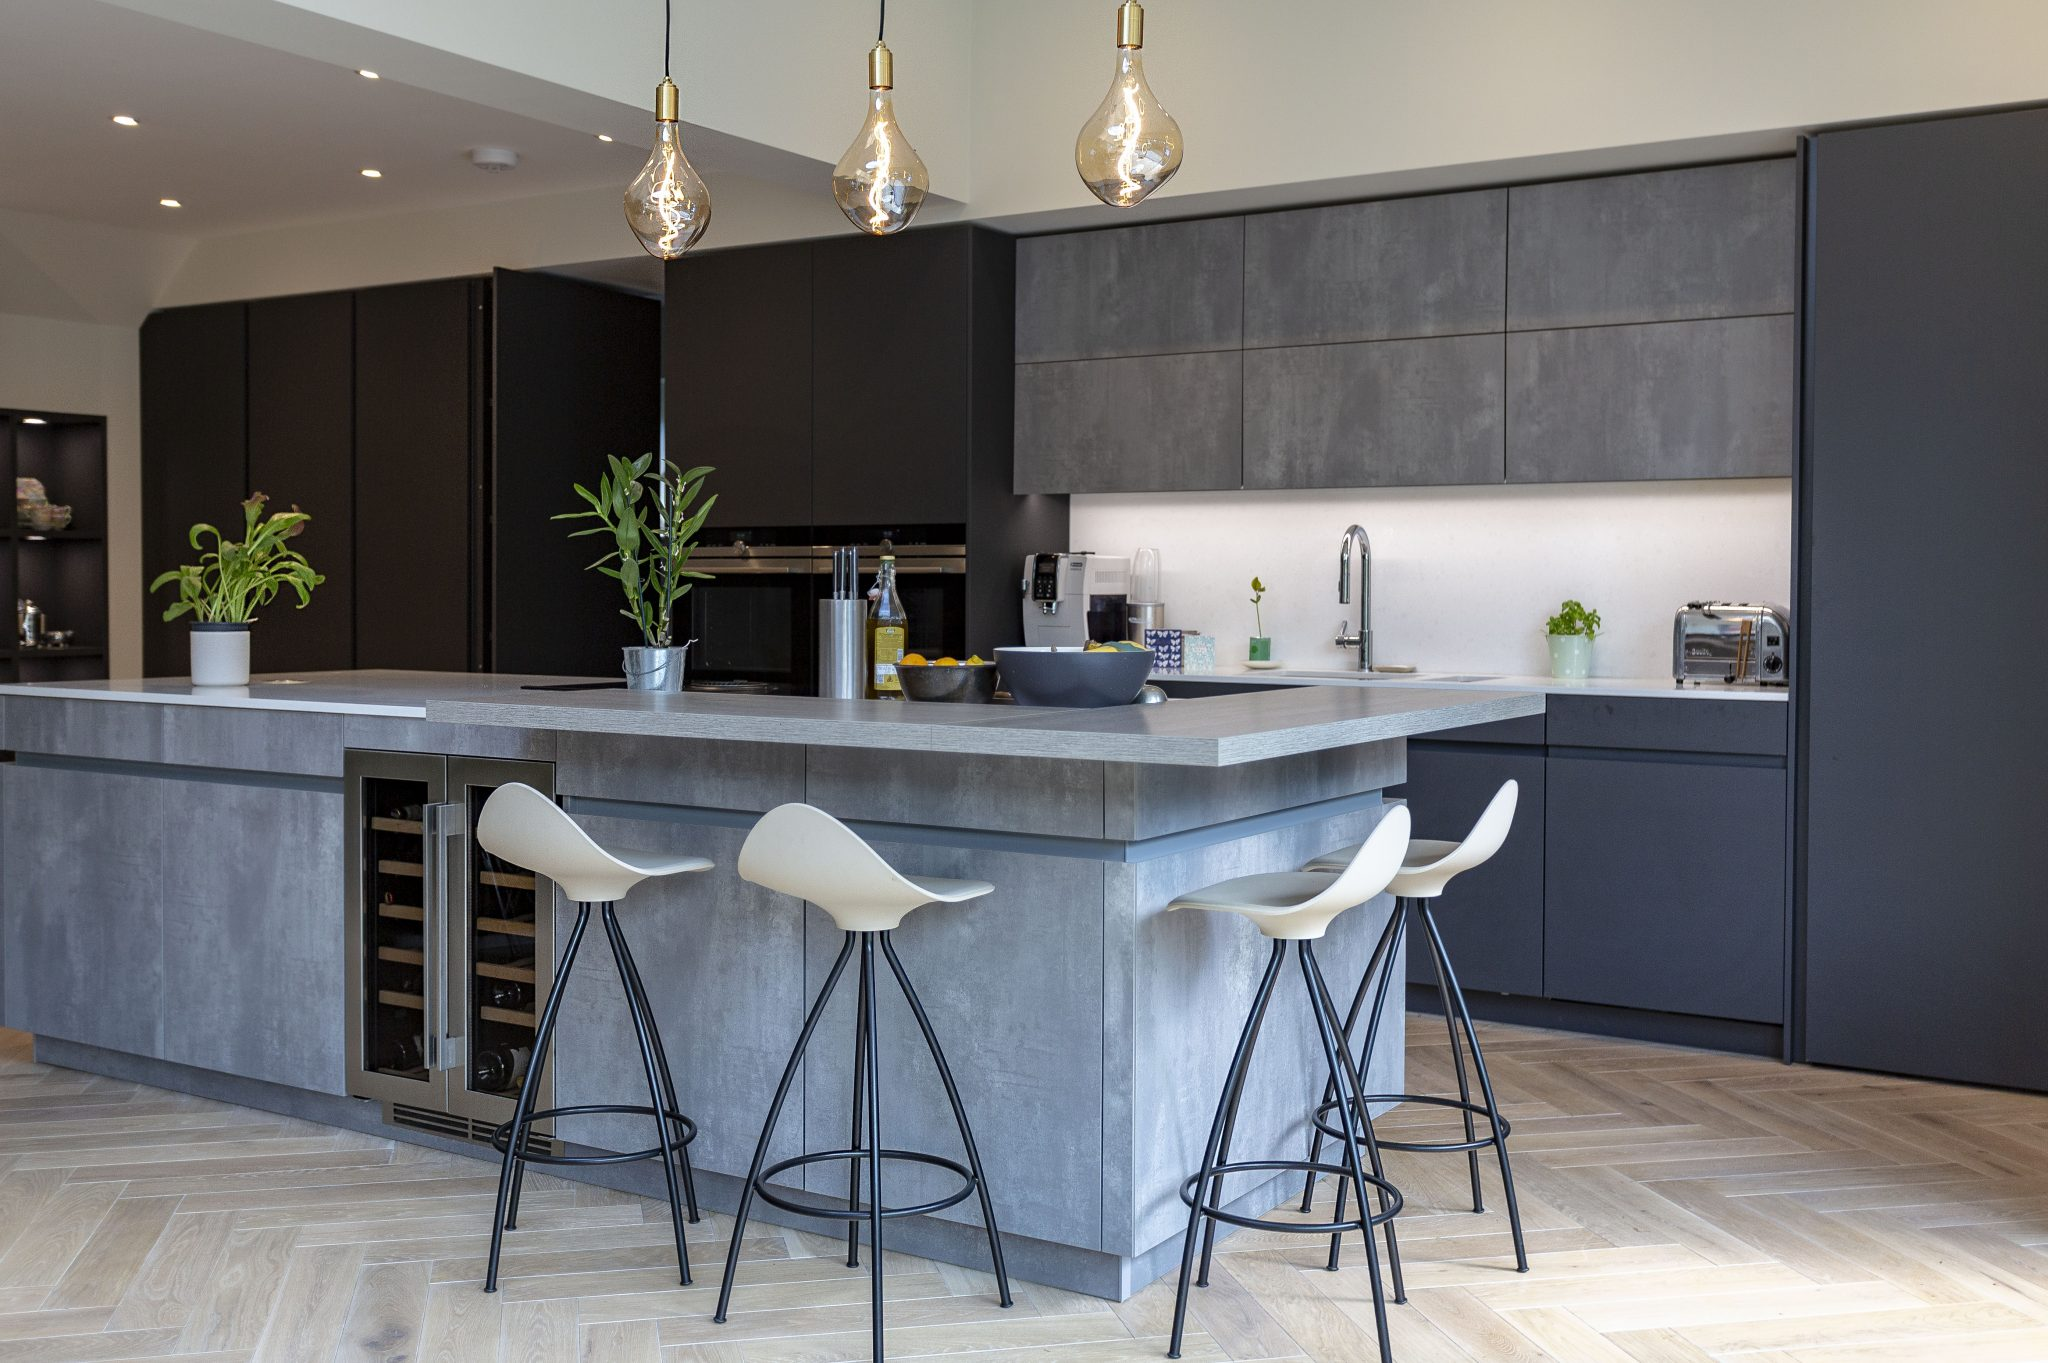 LEICHT CARBON GREY AND CONCRETE KITCHEN RICHMOND